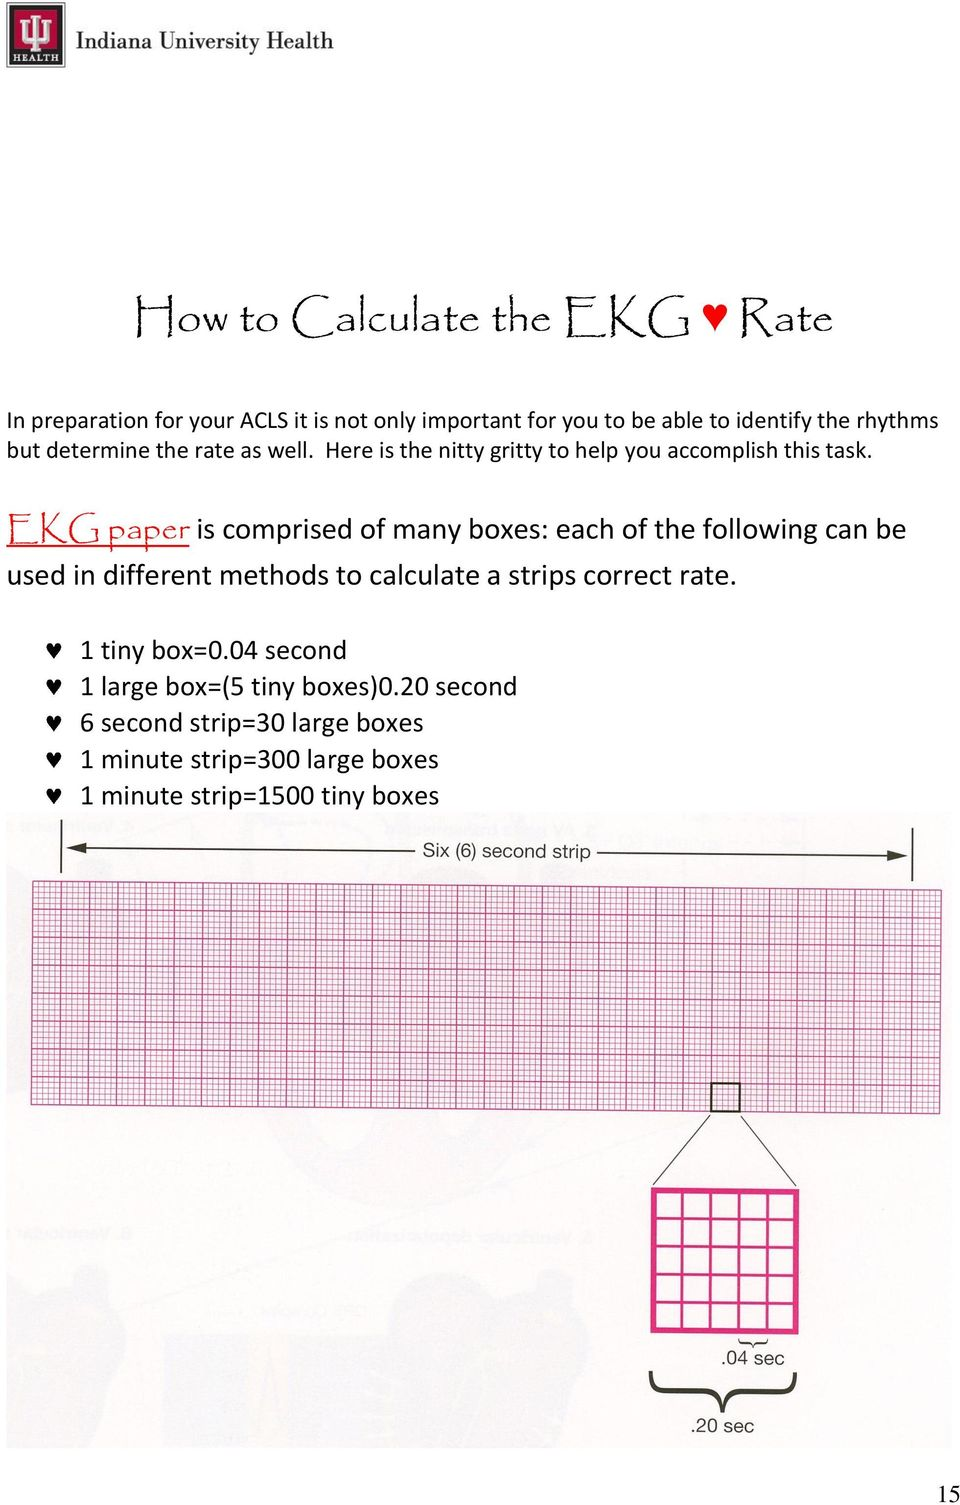 EKG paper is comprised of many boxes: each of the following can be used in different methods to calculate a strips correct